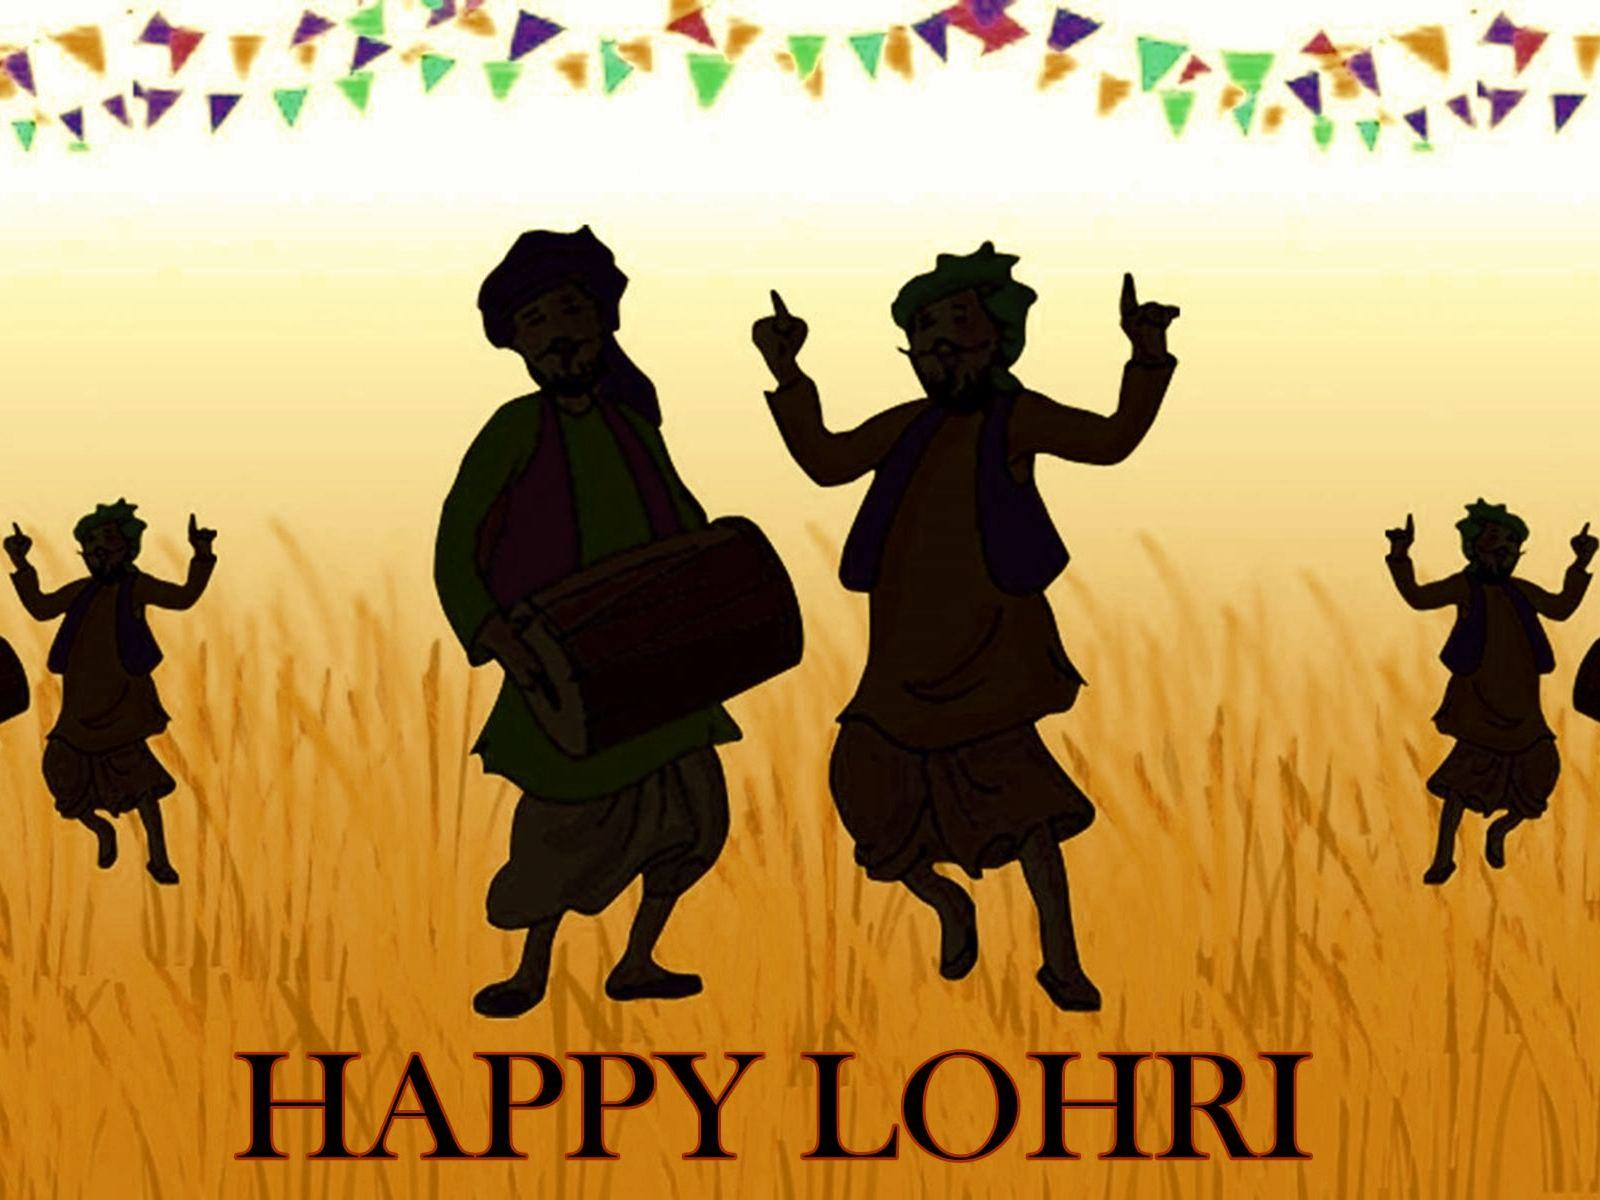 Happy lohri 2018 best lohri wishes sms whatsapp and facebook happy lohri 2018 best lohri wishes sms whatsapp and facebook messages to wish your loved ones m4hsunfo